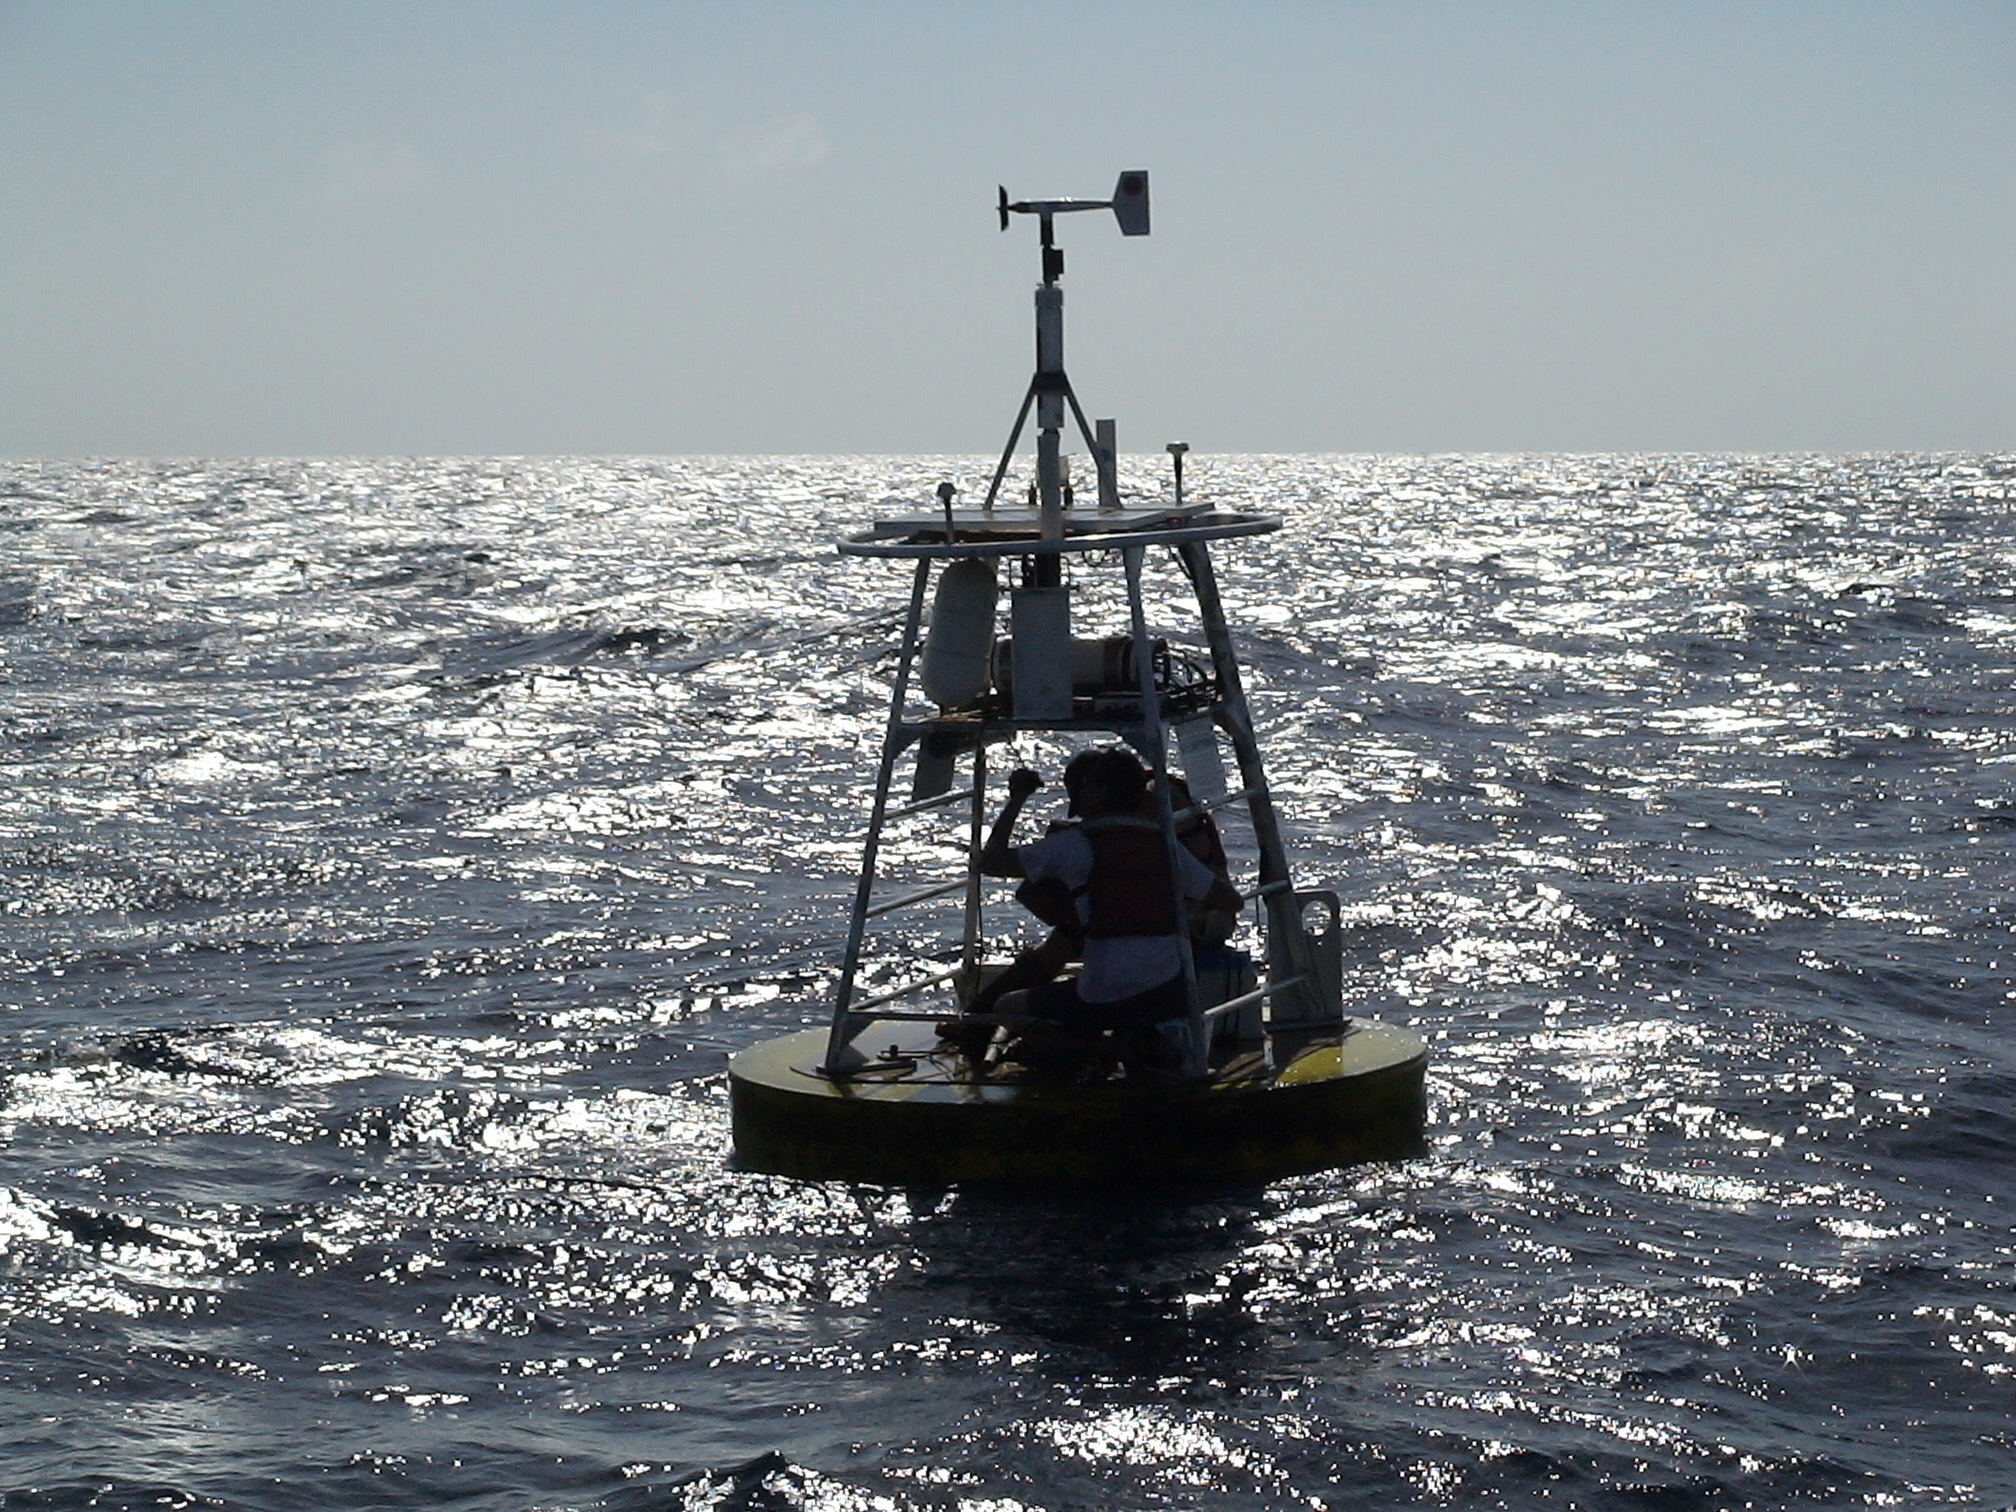 COMPS buoy maintenance in the Eastern Gulf of Mexico in 2008.